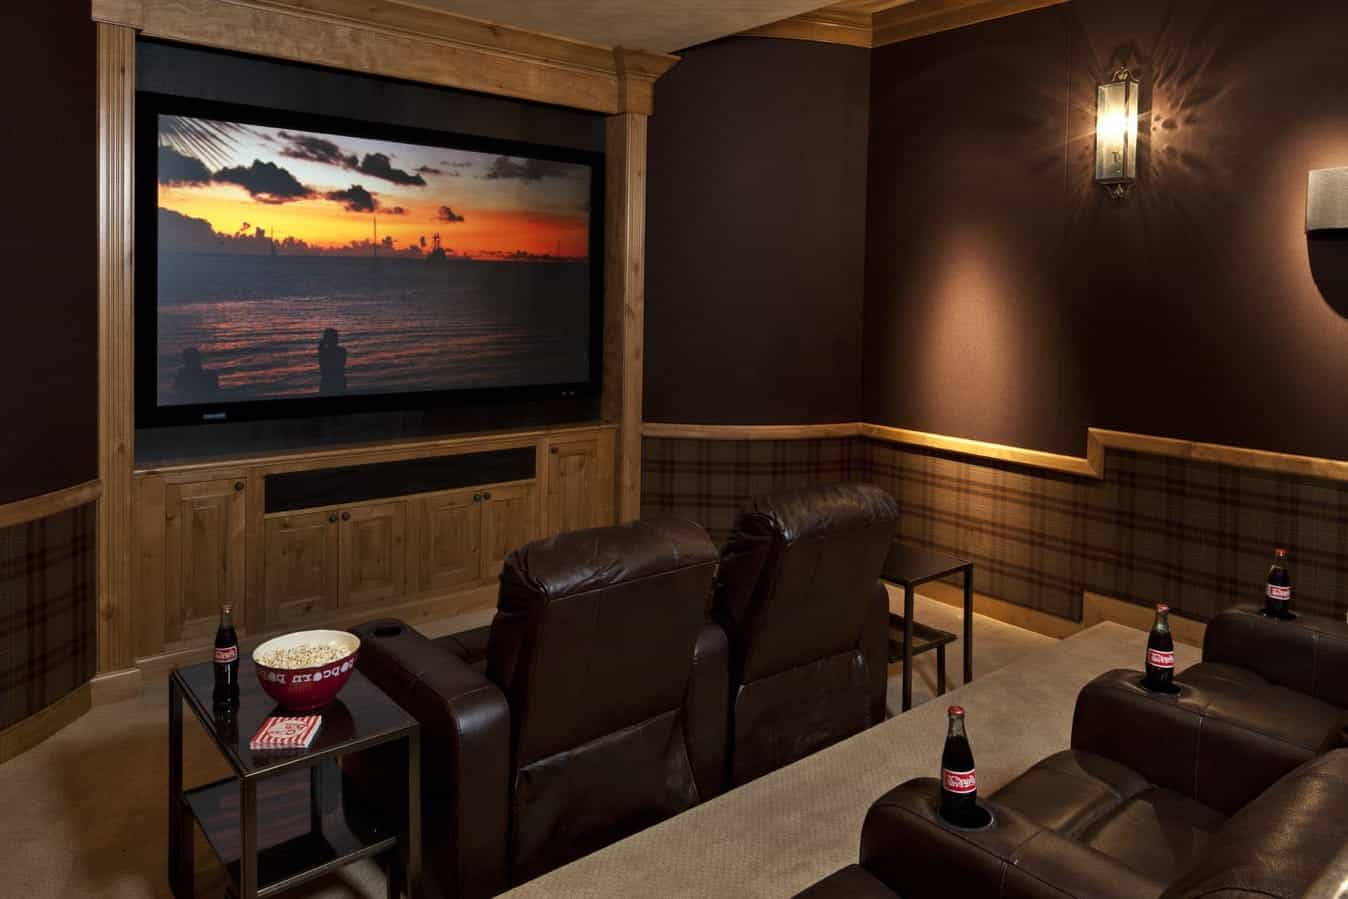 Rustic Home Theater Interior Design (View 15 of 21)